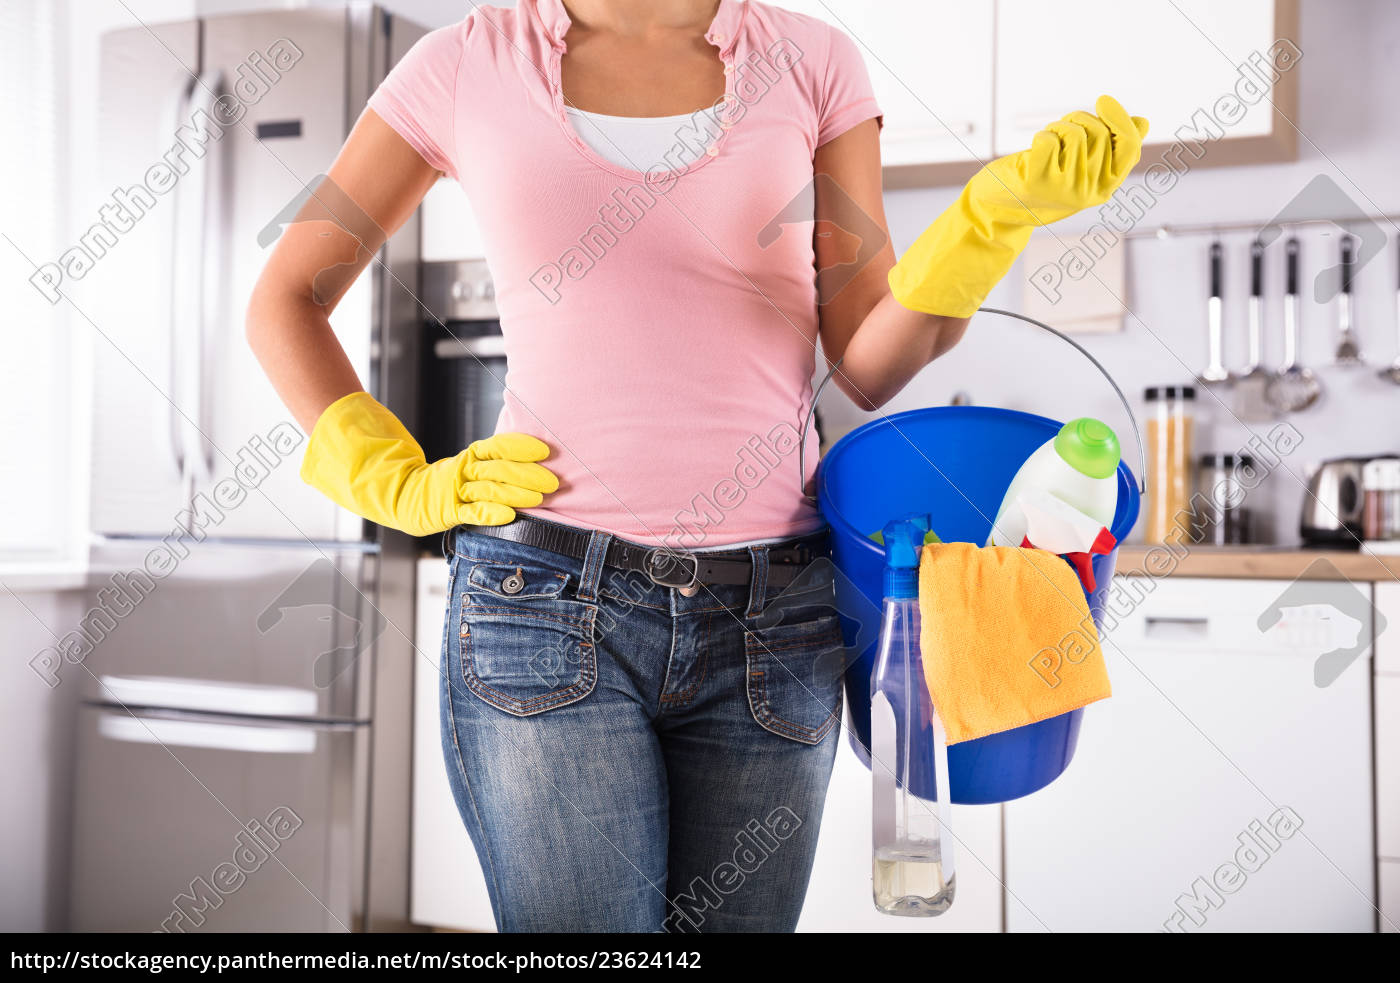 woman, holding, cleaning, tools, and, products - 23624142